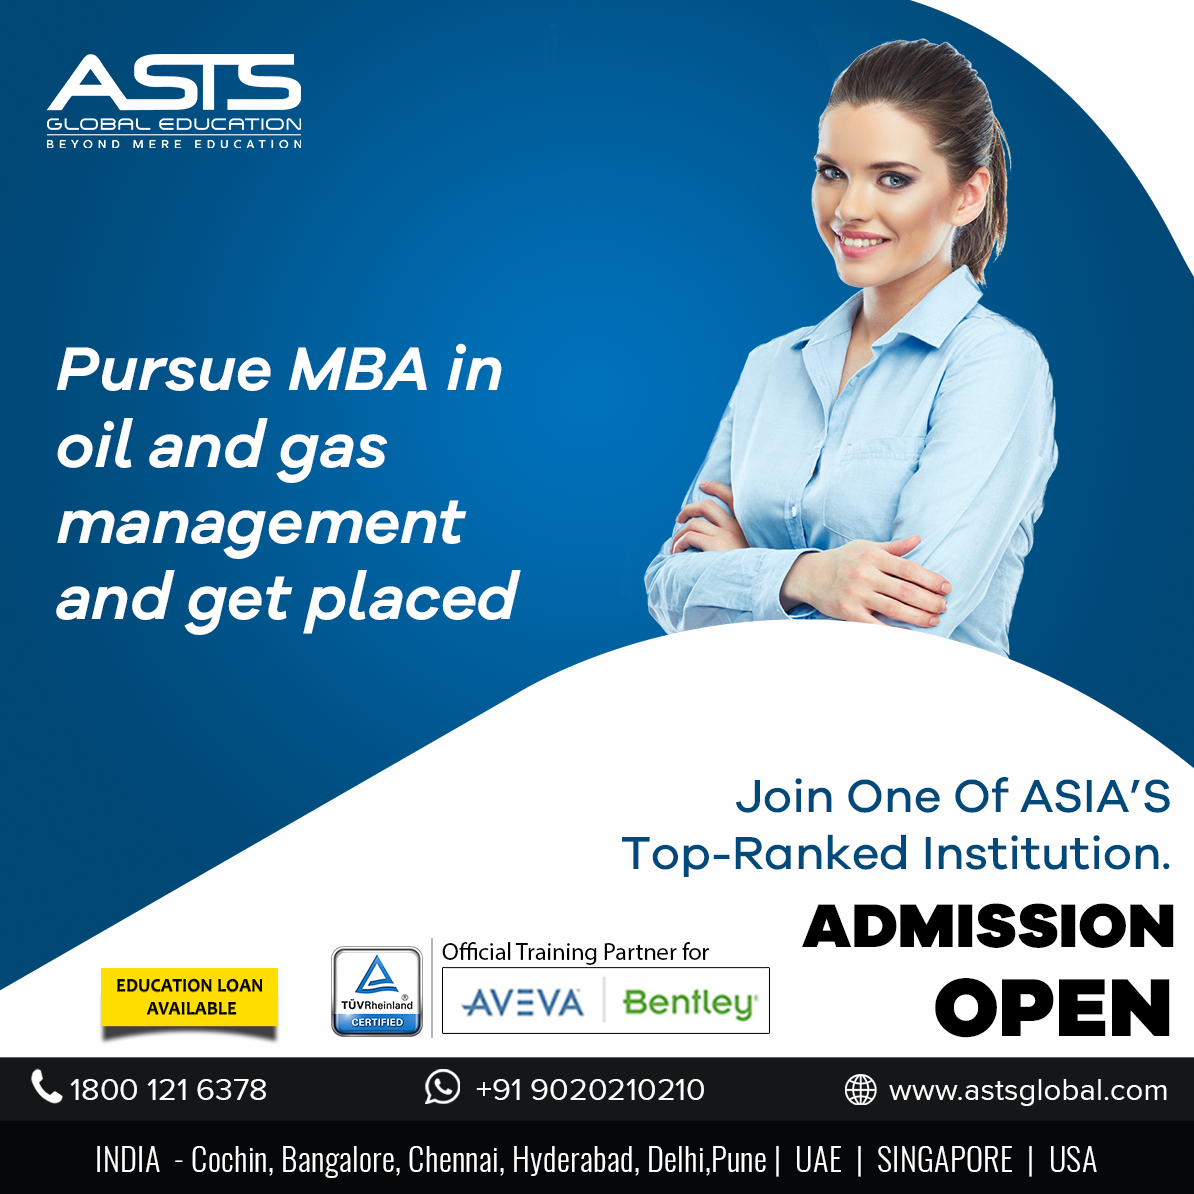 Pursue MBA in oil and gas management and get placed in